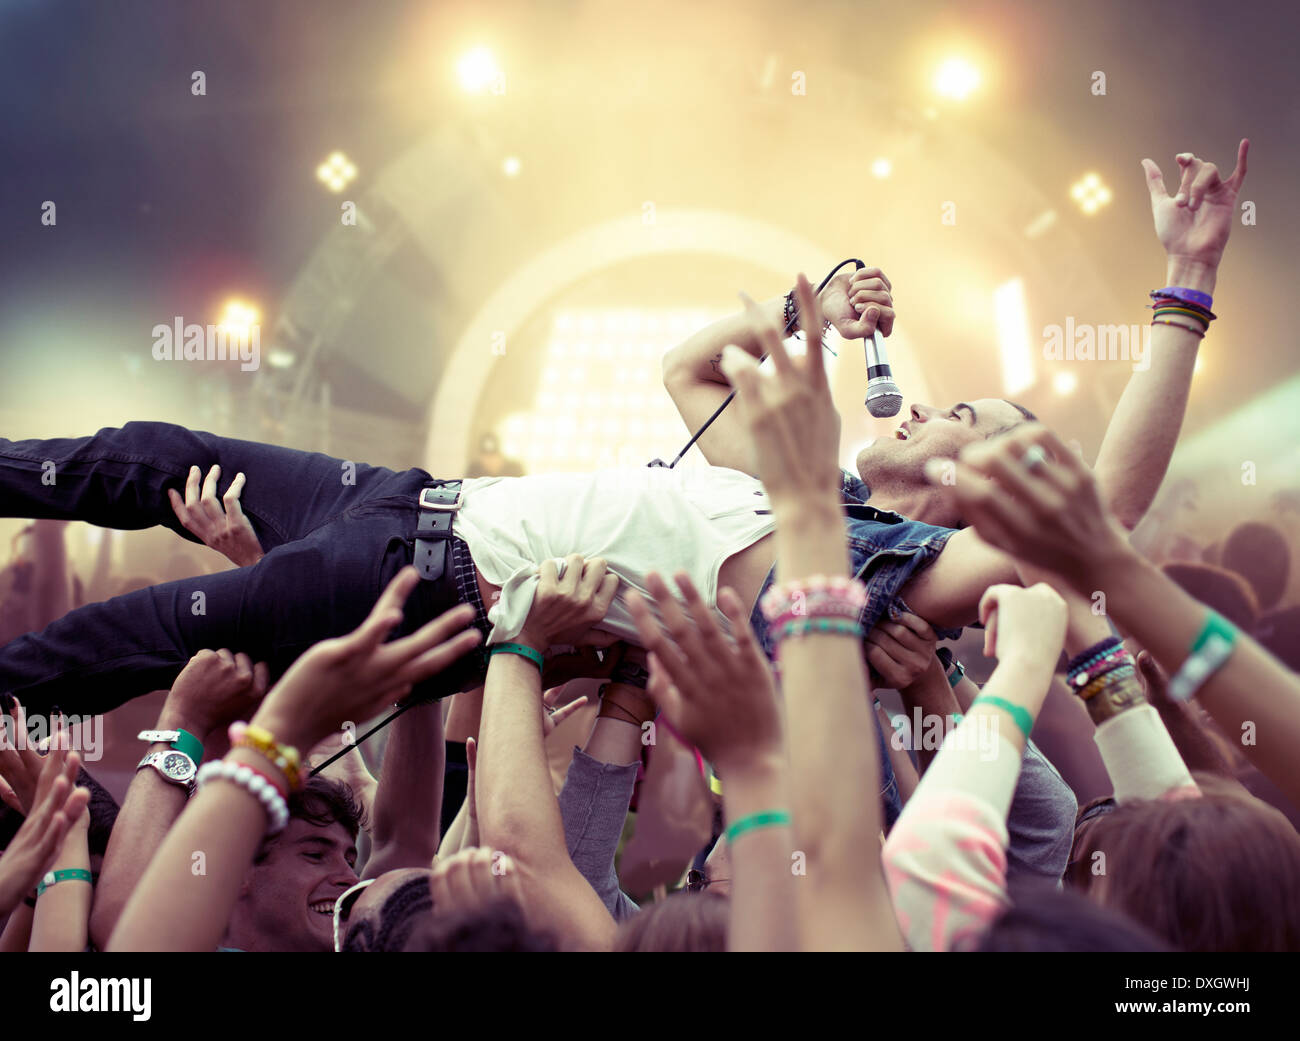 Performer crowd surfing at music festival - Stock Image